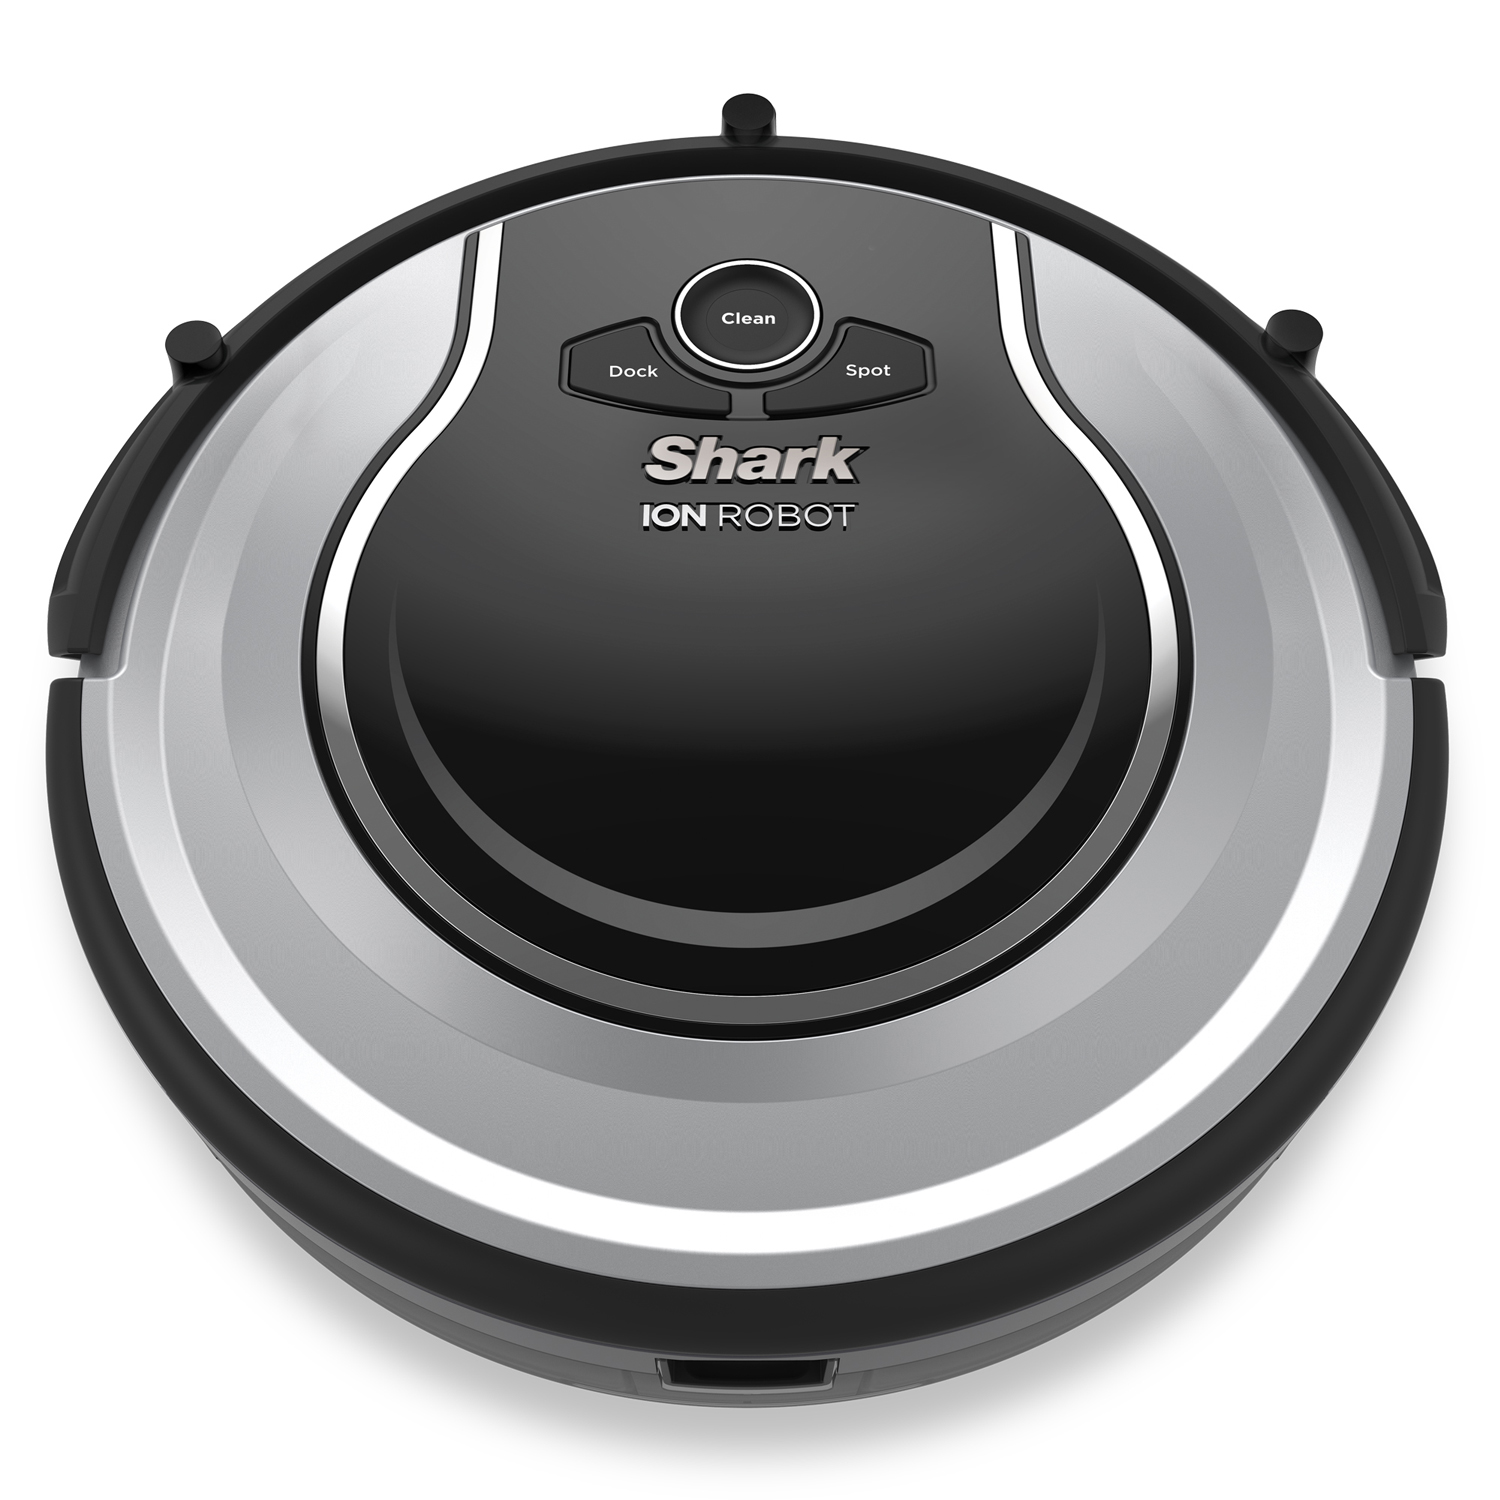 Shark ION ROBOT RV700 Robot Vacuum Cleaner with Easy Scheduling Remote